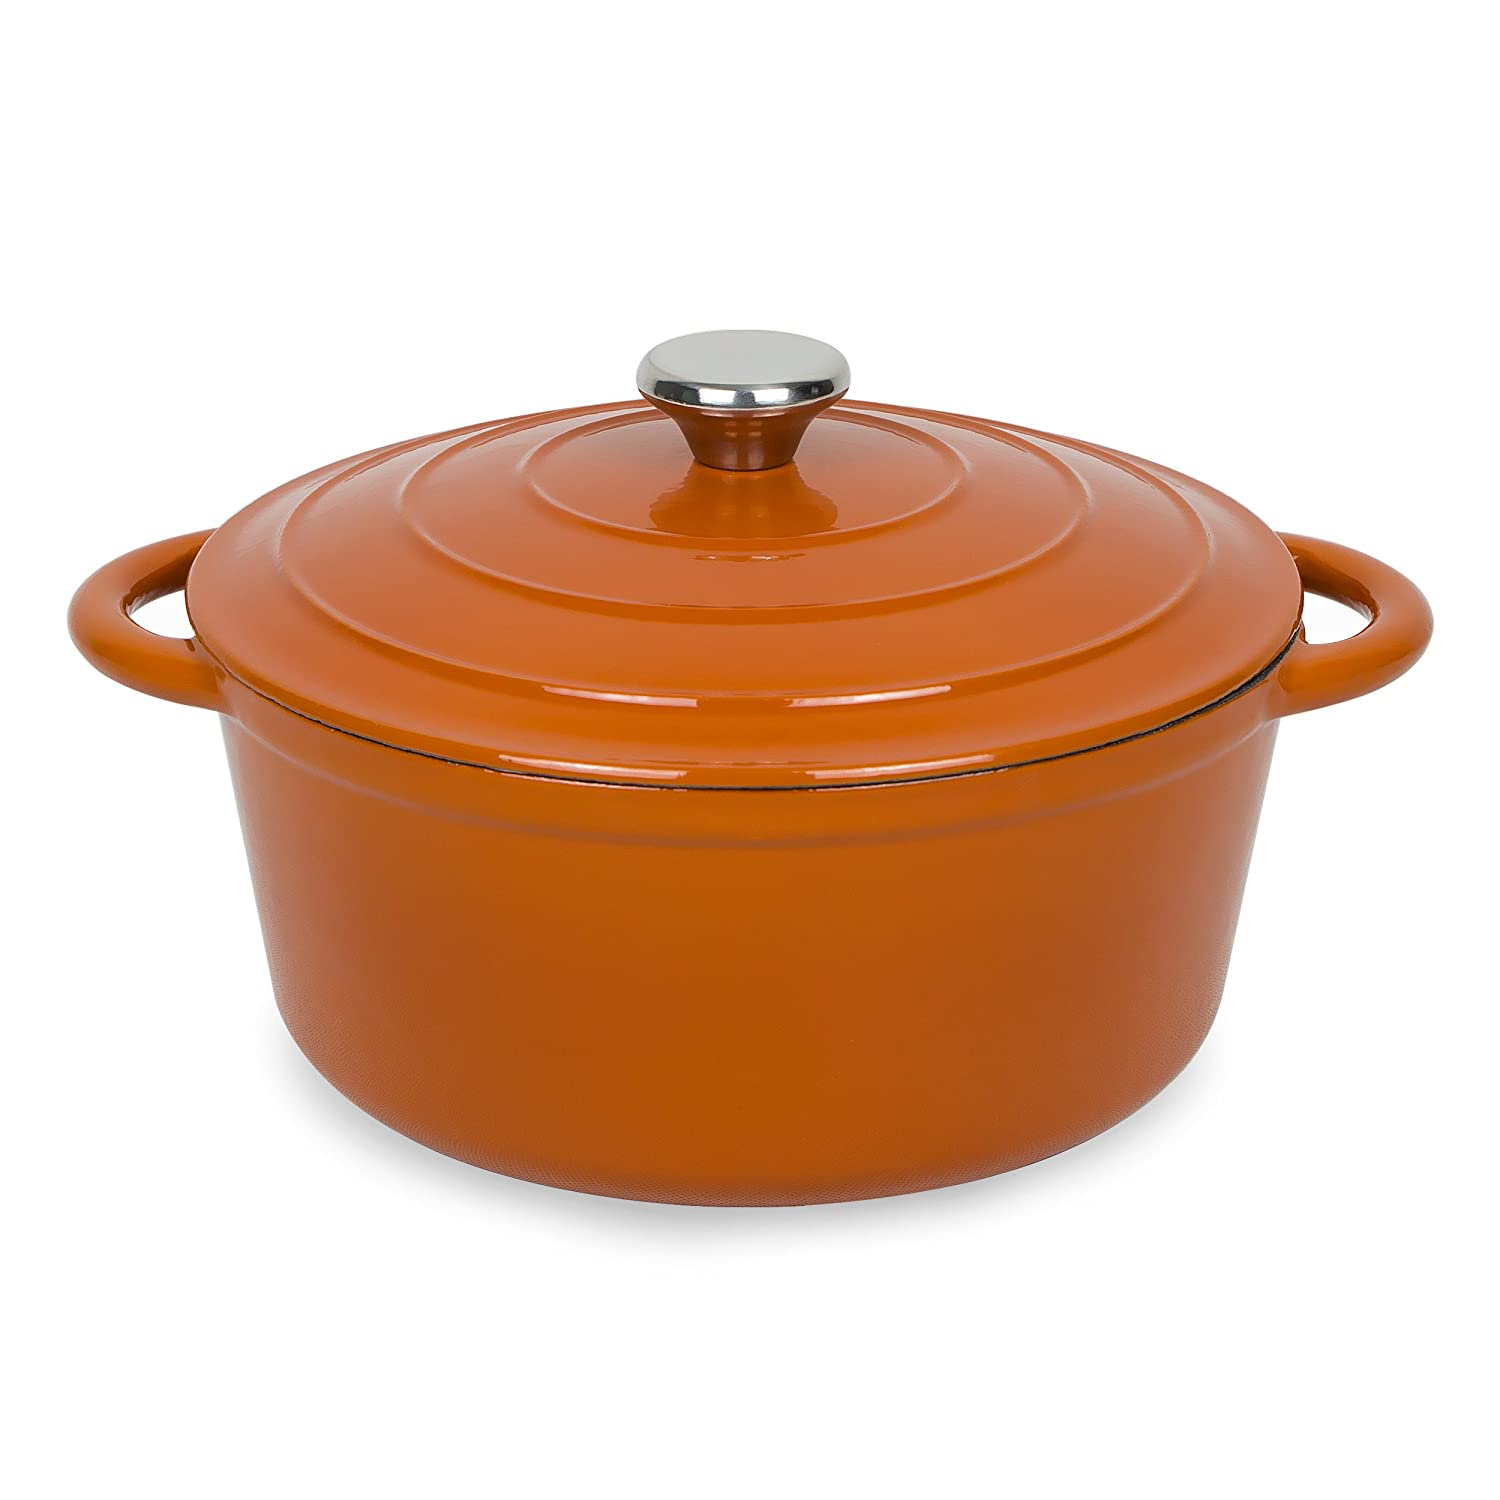 AIDEA Enameled Cast Iron Dutch Oven - 5-Quart Orange Round Ceramic Coated Cookware French Oven with Self Basting Lid